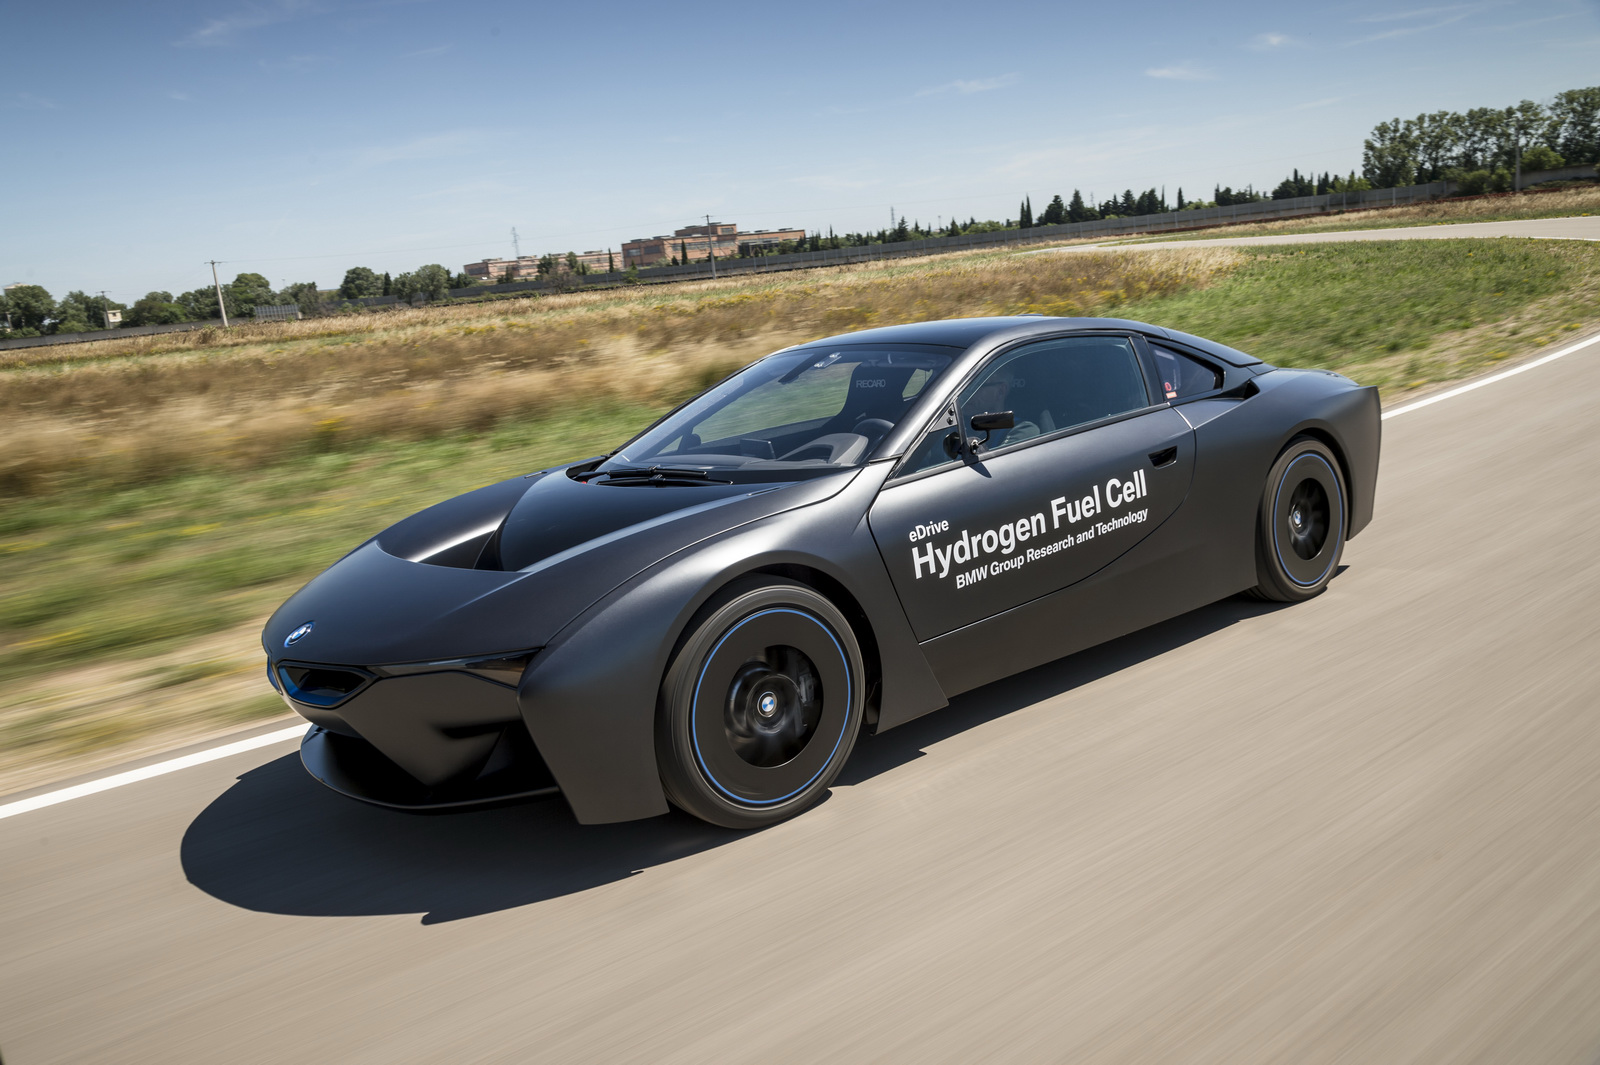 """market penetration bmw Speaking at the 26th aachen colloquium automobile and engine technology, frohlich said that """"bmw will enter the fuel cell market early in the next decade, starting with very small production."""